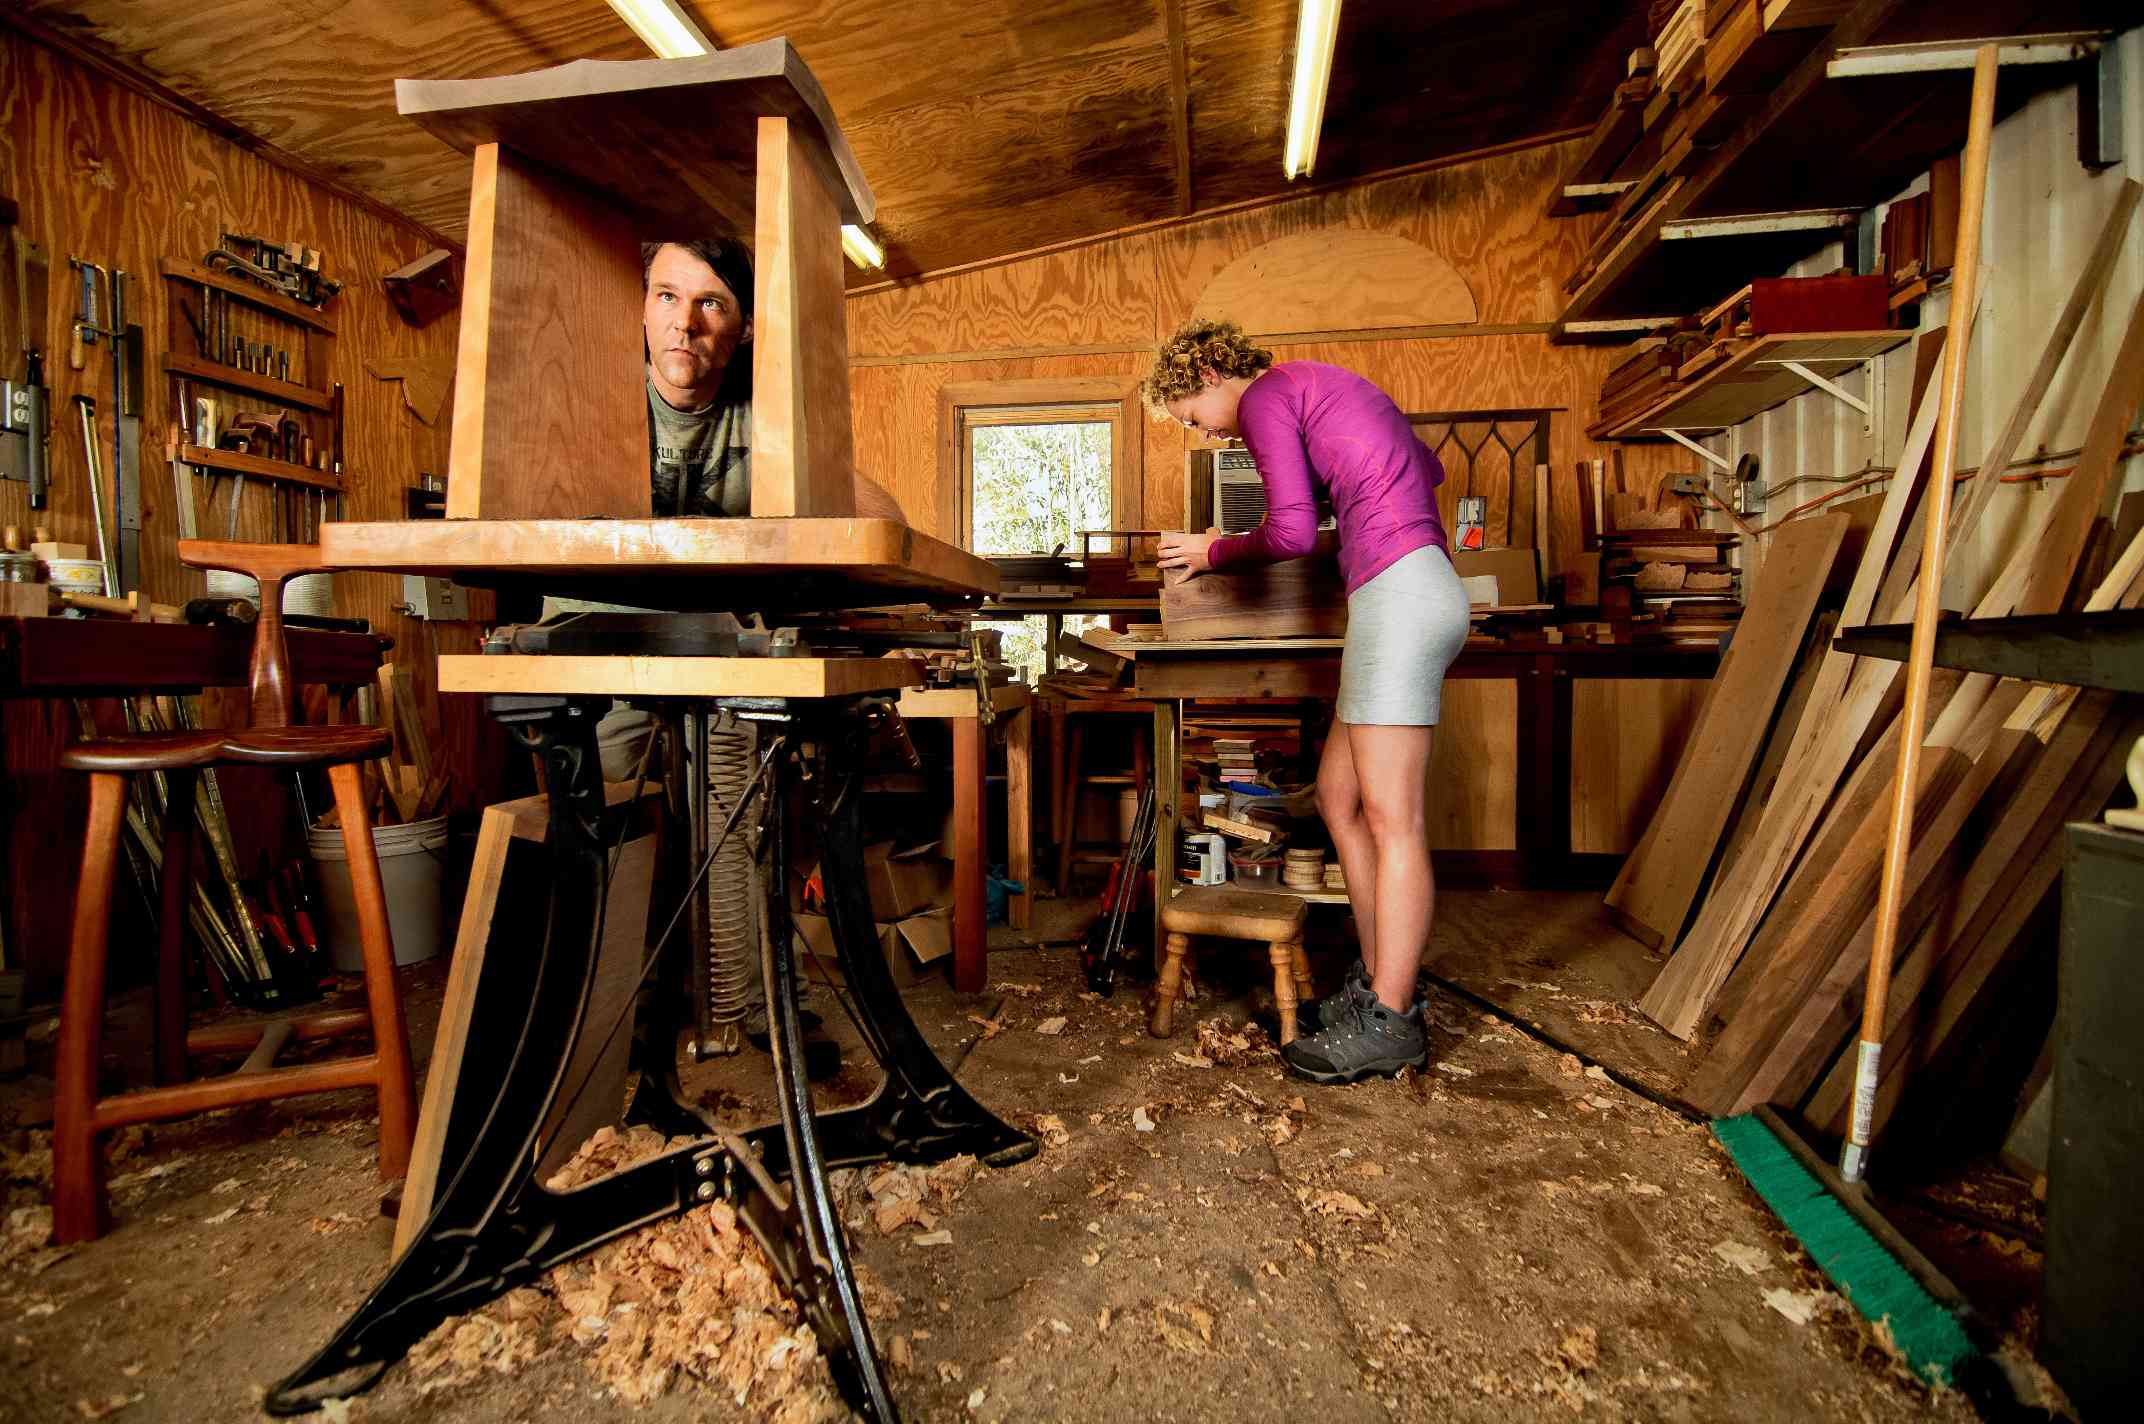 Katie and Joseph in their Workshop